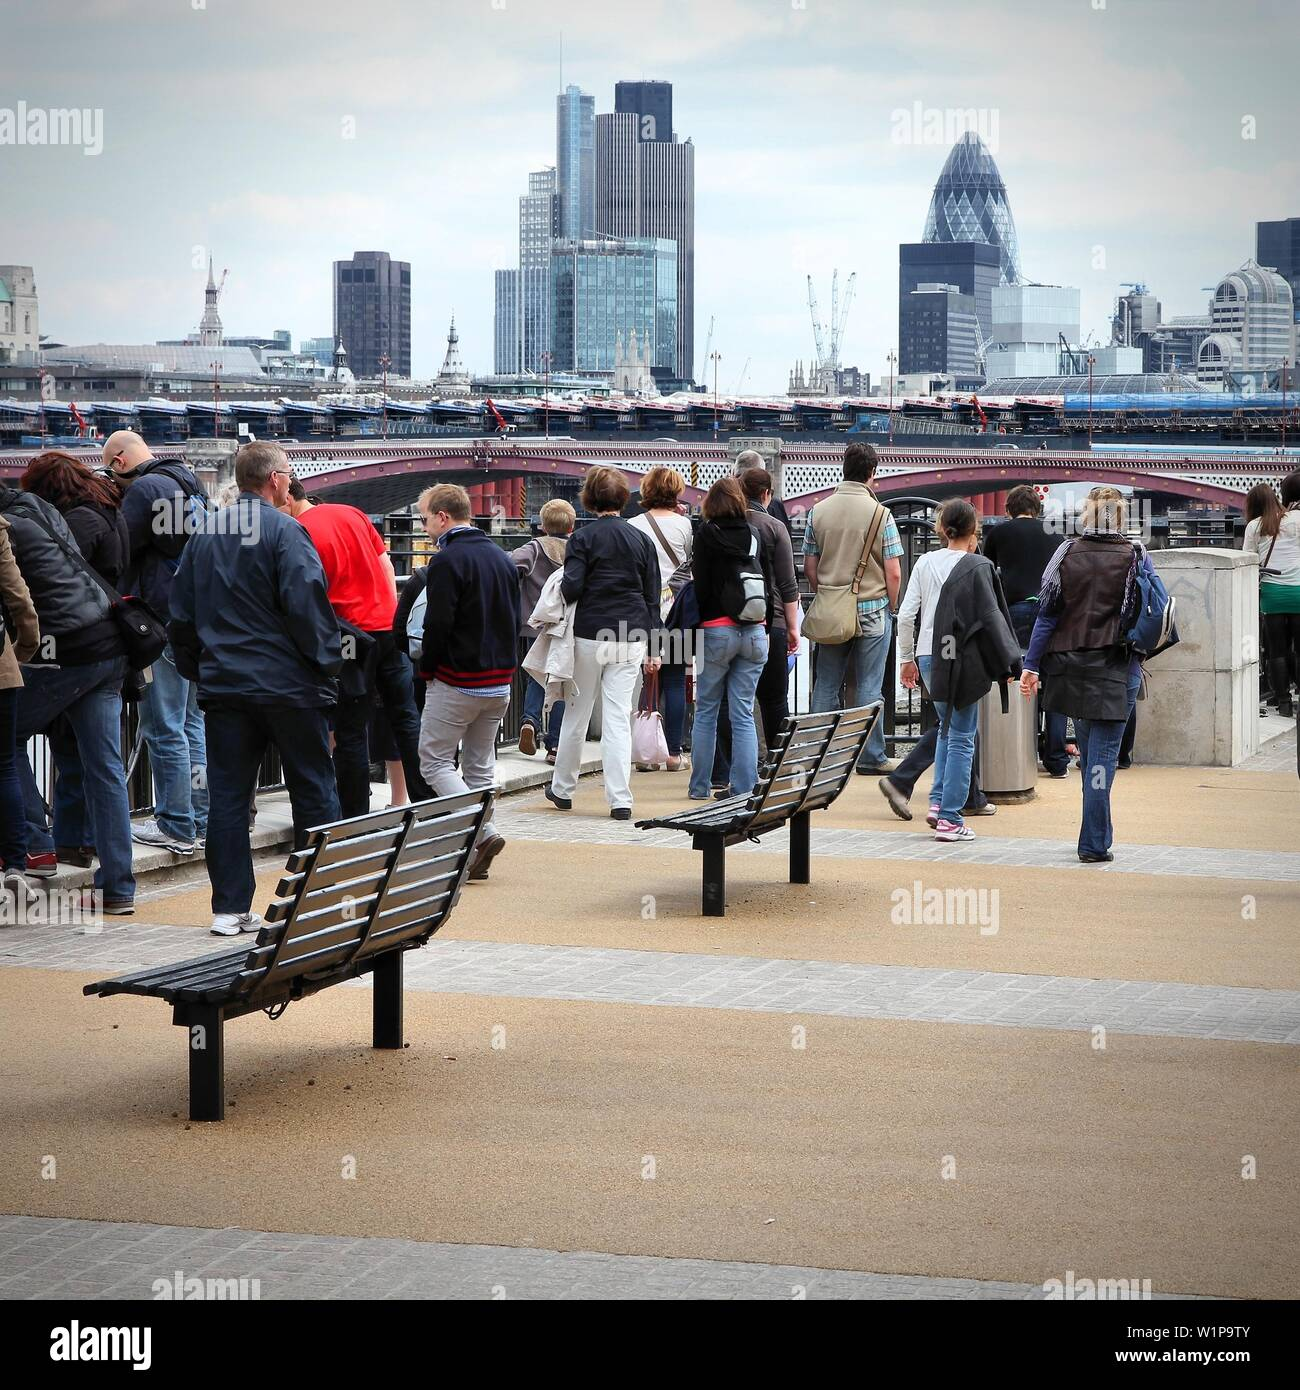 LONDON, UK - MAY 13, 2012: Tourists visit Thames Embankment in London. With more than 14 million international arrivals in 2009, London is the most vi - Stock Image